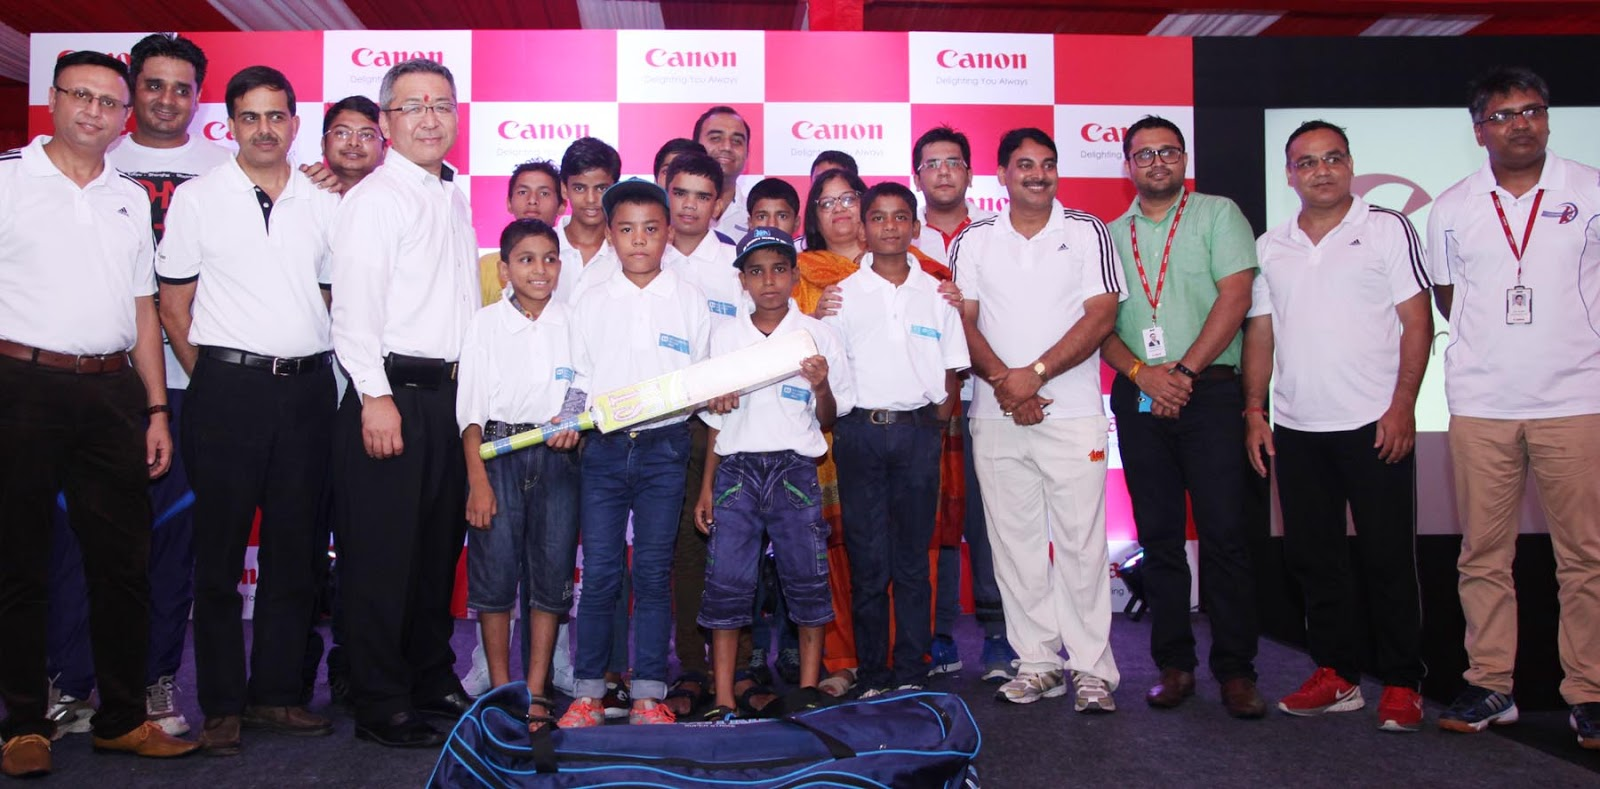 Canon India takes a leap in its social endeavour, leads way